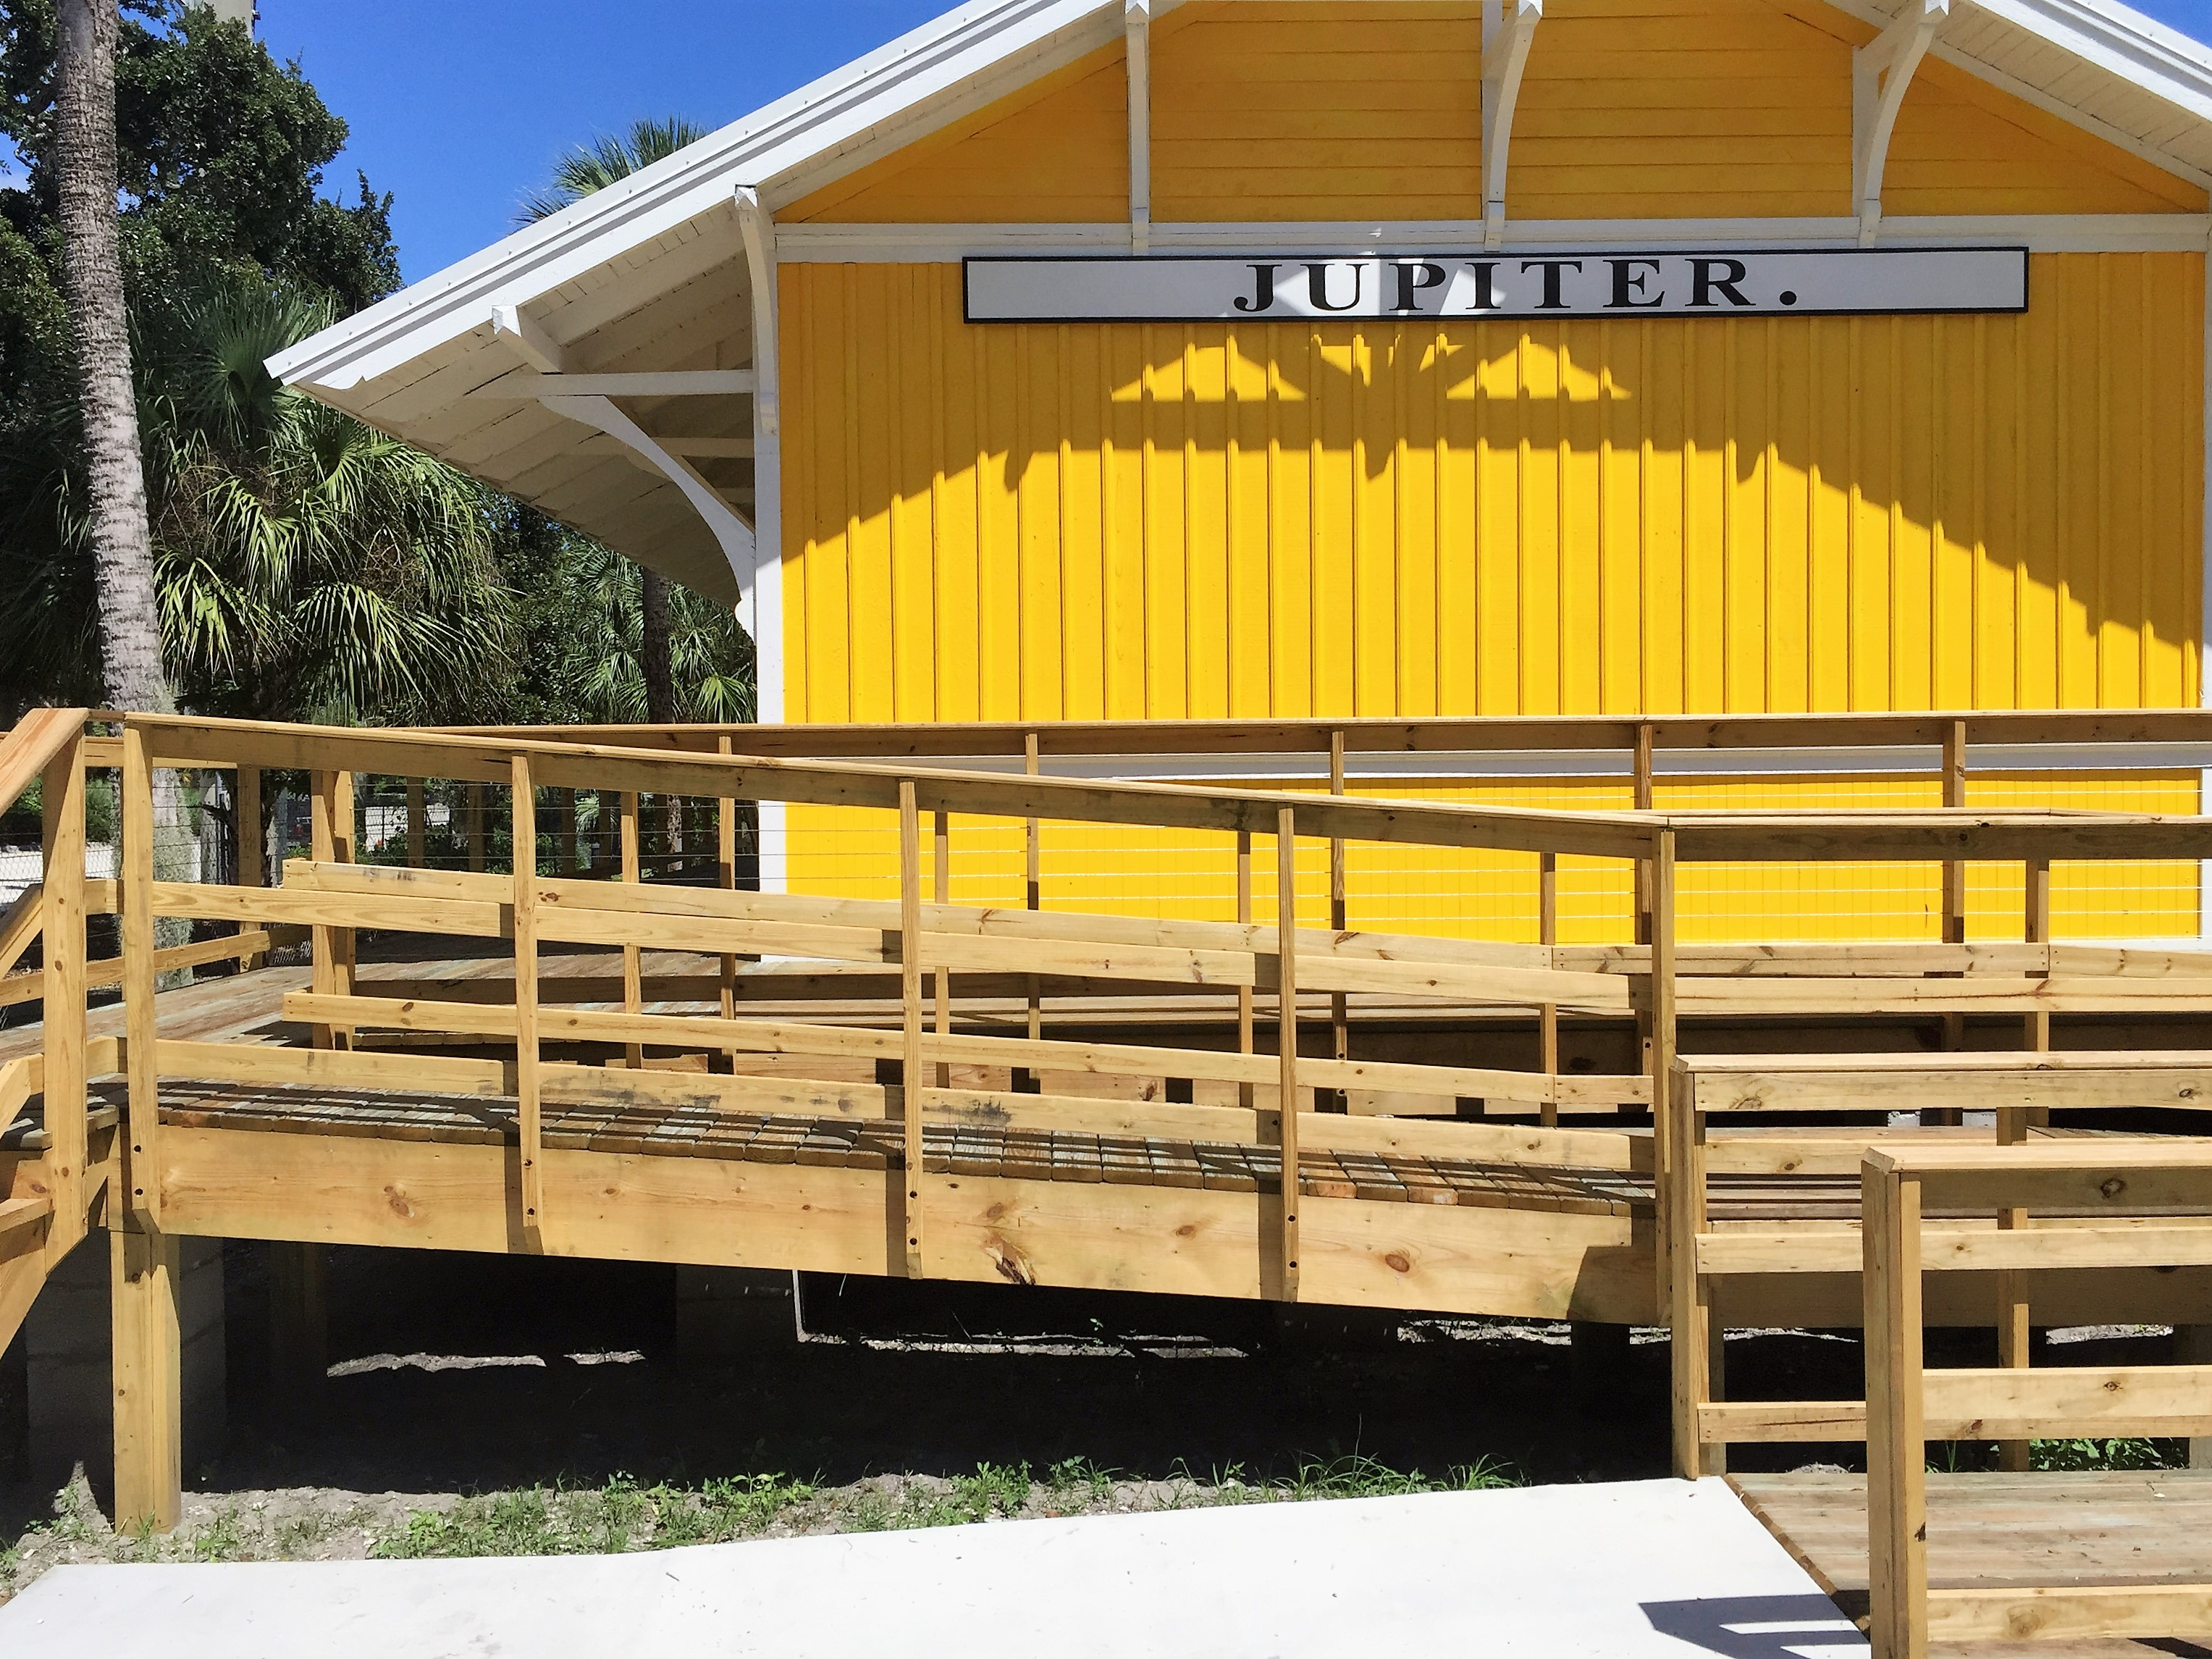 The Jupiter train depot is one of the few remaining wood frame stations built by the Florida East Coast Railroad.    Many of its depots were built from the same building plans and are only distinguishable by the large signs facing down the tracks. The f